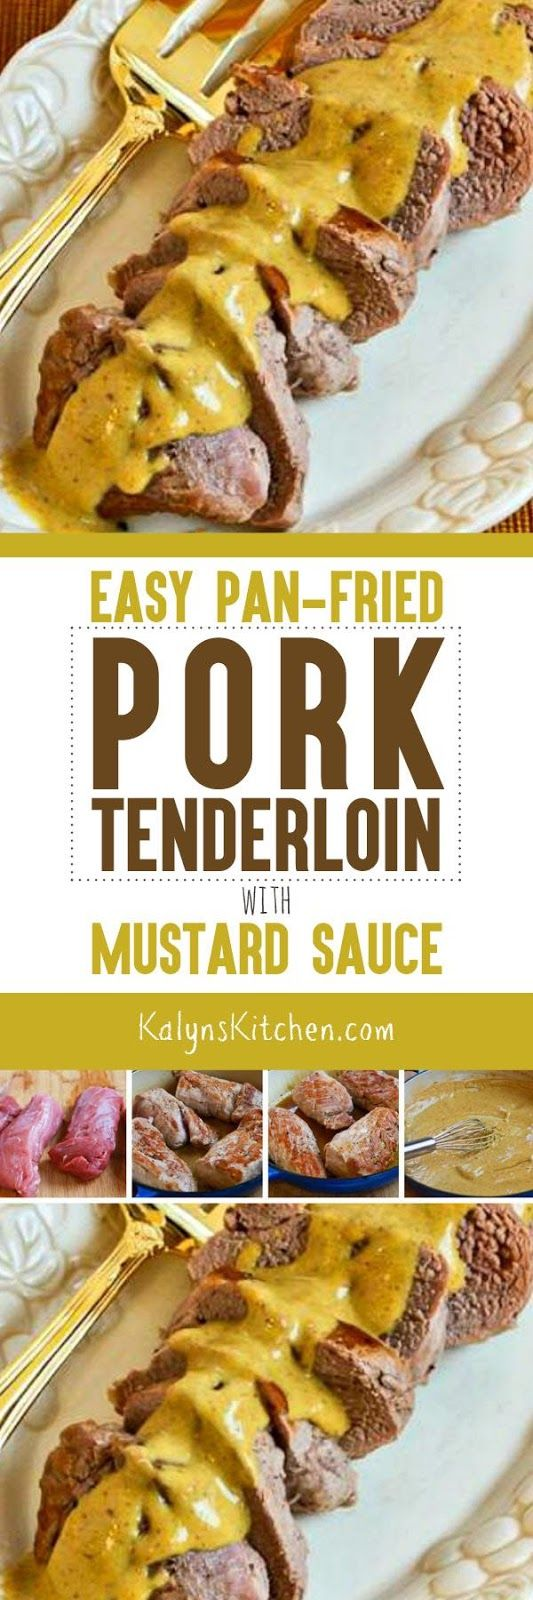 Easy Pan-Fried Pork Tenderloin with Mustard Sauce is an amazingly EASY dinner that's low-carb, Keto, low-glycemic, gluten-free, and South Beach Diet friendly. And this is absolutely delicious! [found on KalynsKitchen.com] #EasyPorkRecipe #PorkRecipe #LowCarbPorkRecipe #LowCarbPorkMustardSauce